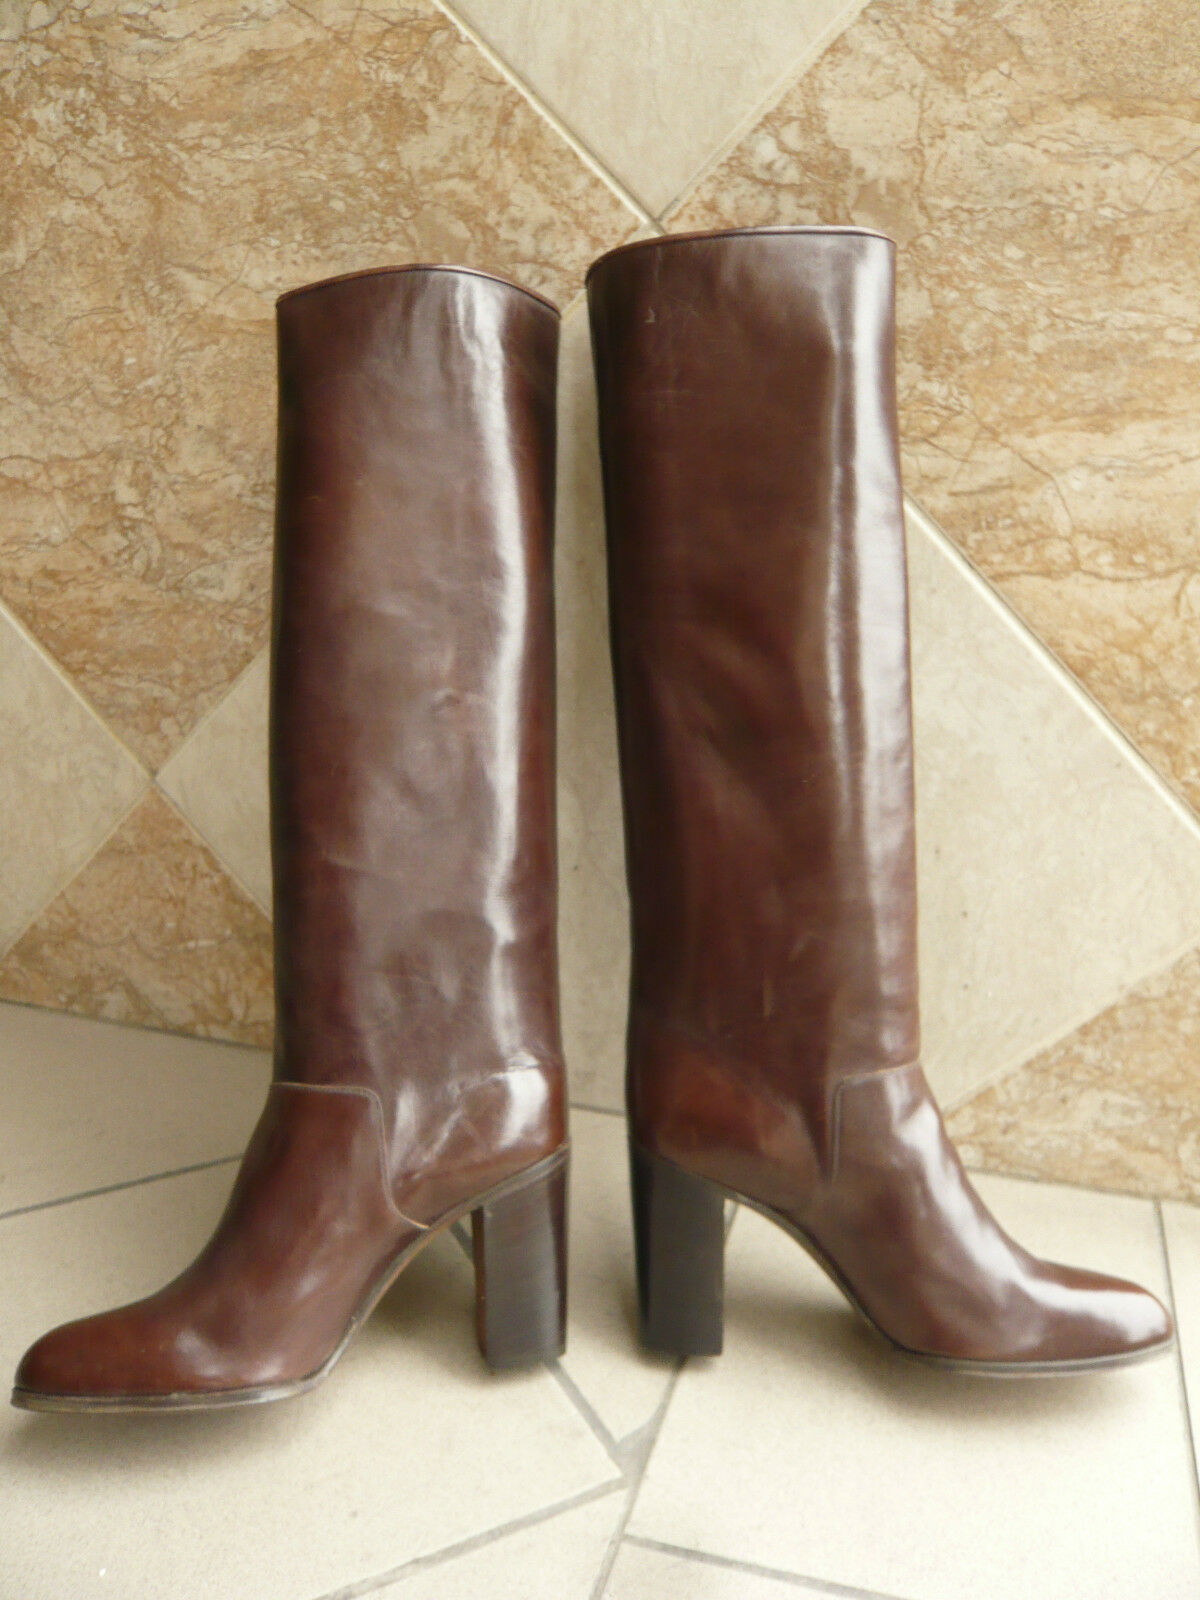 Bottes  vintage   1982  -    JOCELYN Paris    -   (Marron)    -  38,5